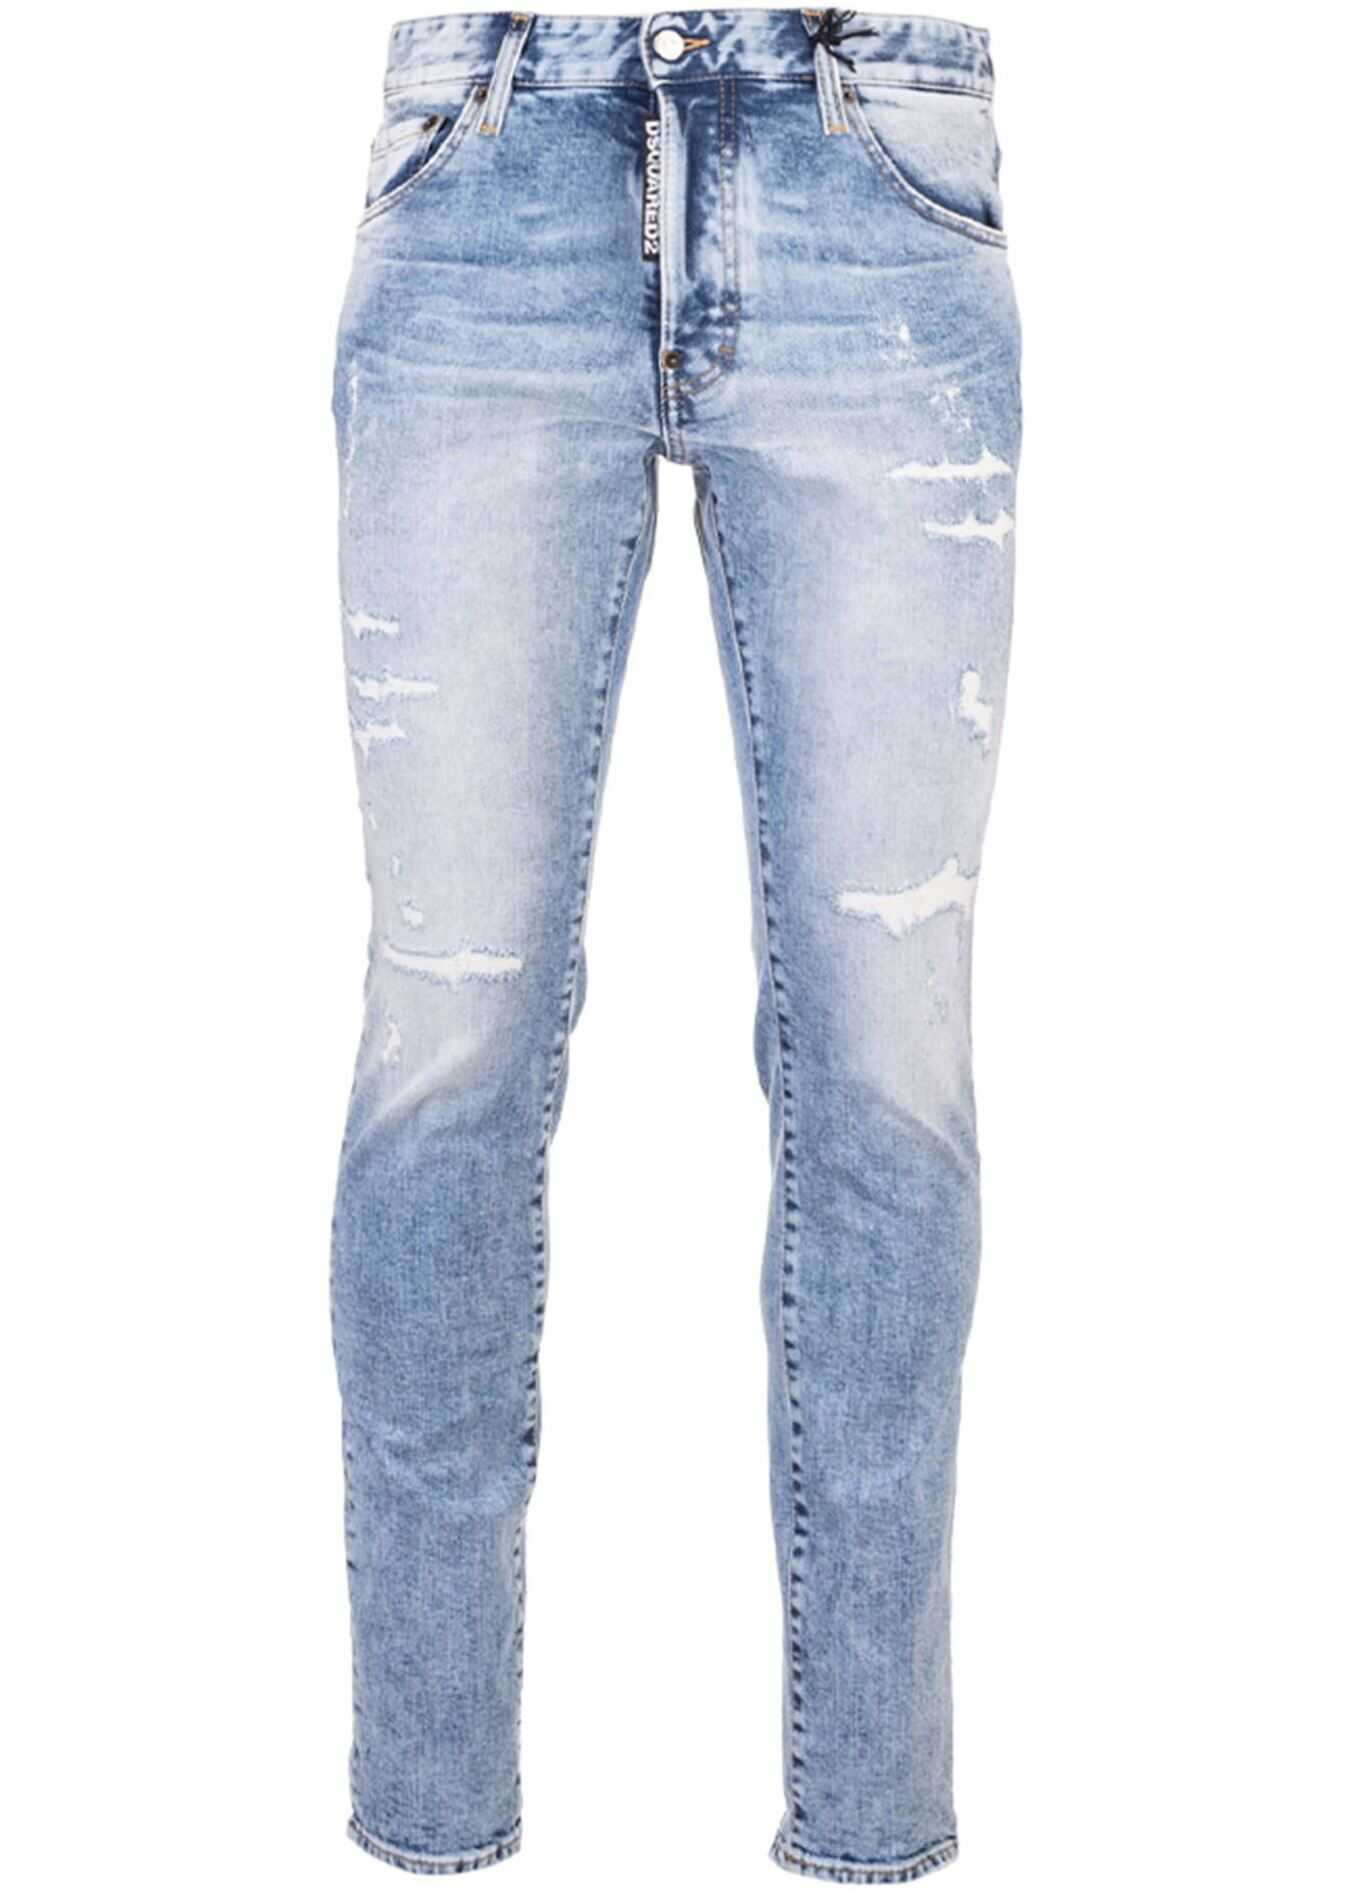 DSQUARED2 Skater Jeans Faded Color Light Baby Blue Blue imagine